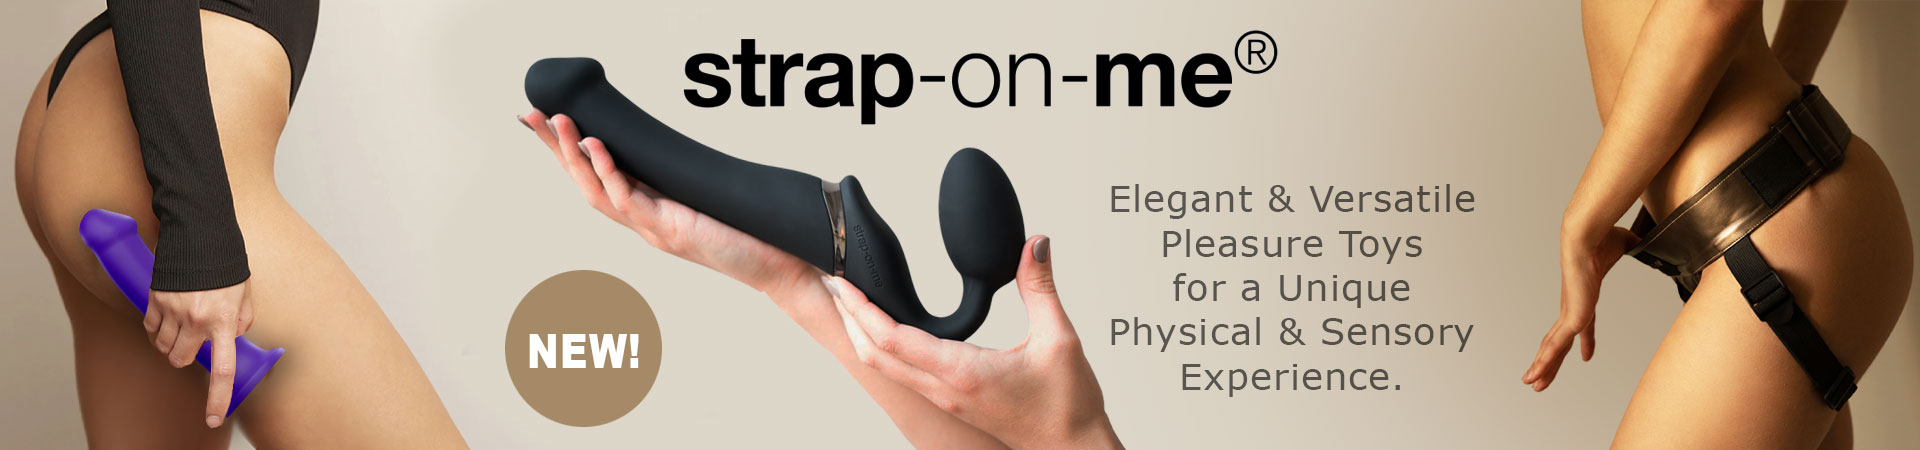 NEW! Strap-On-Me